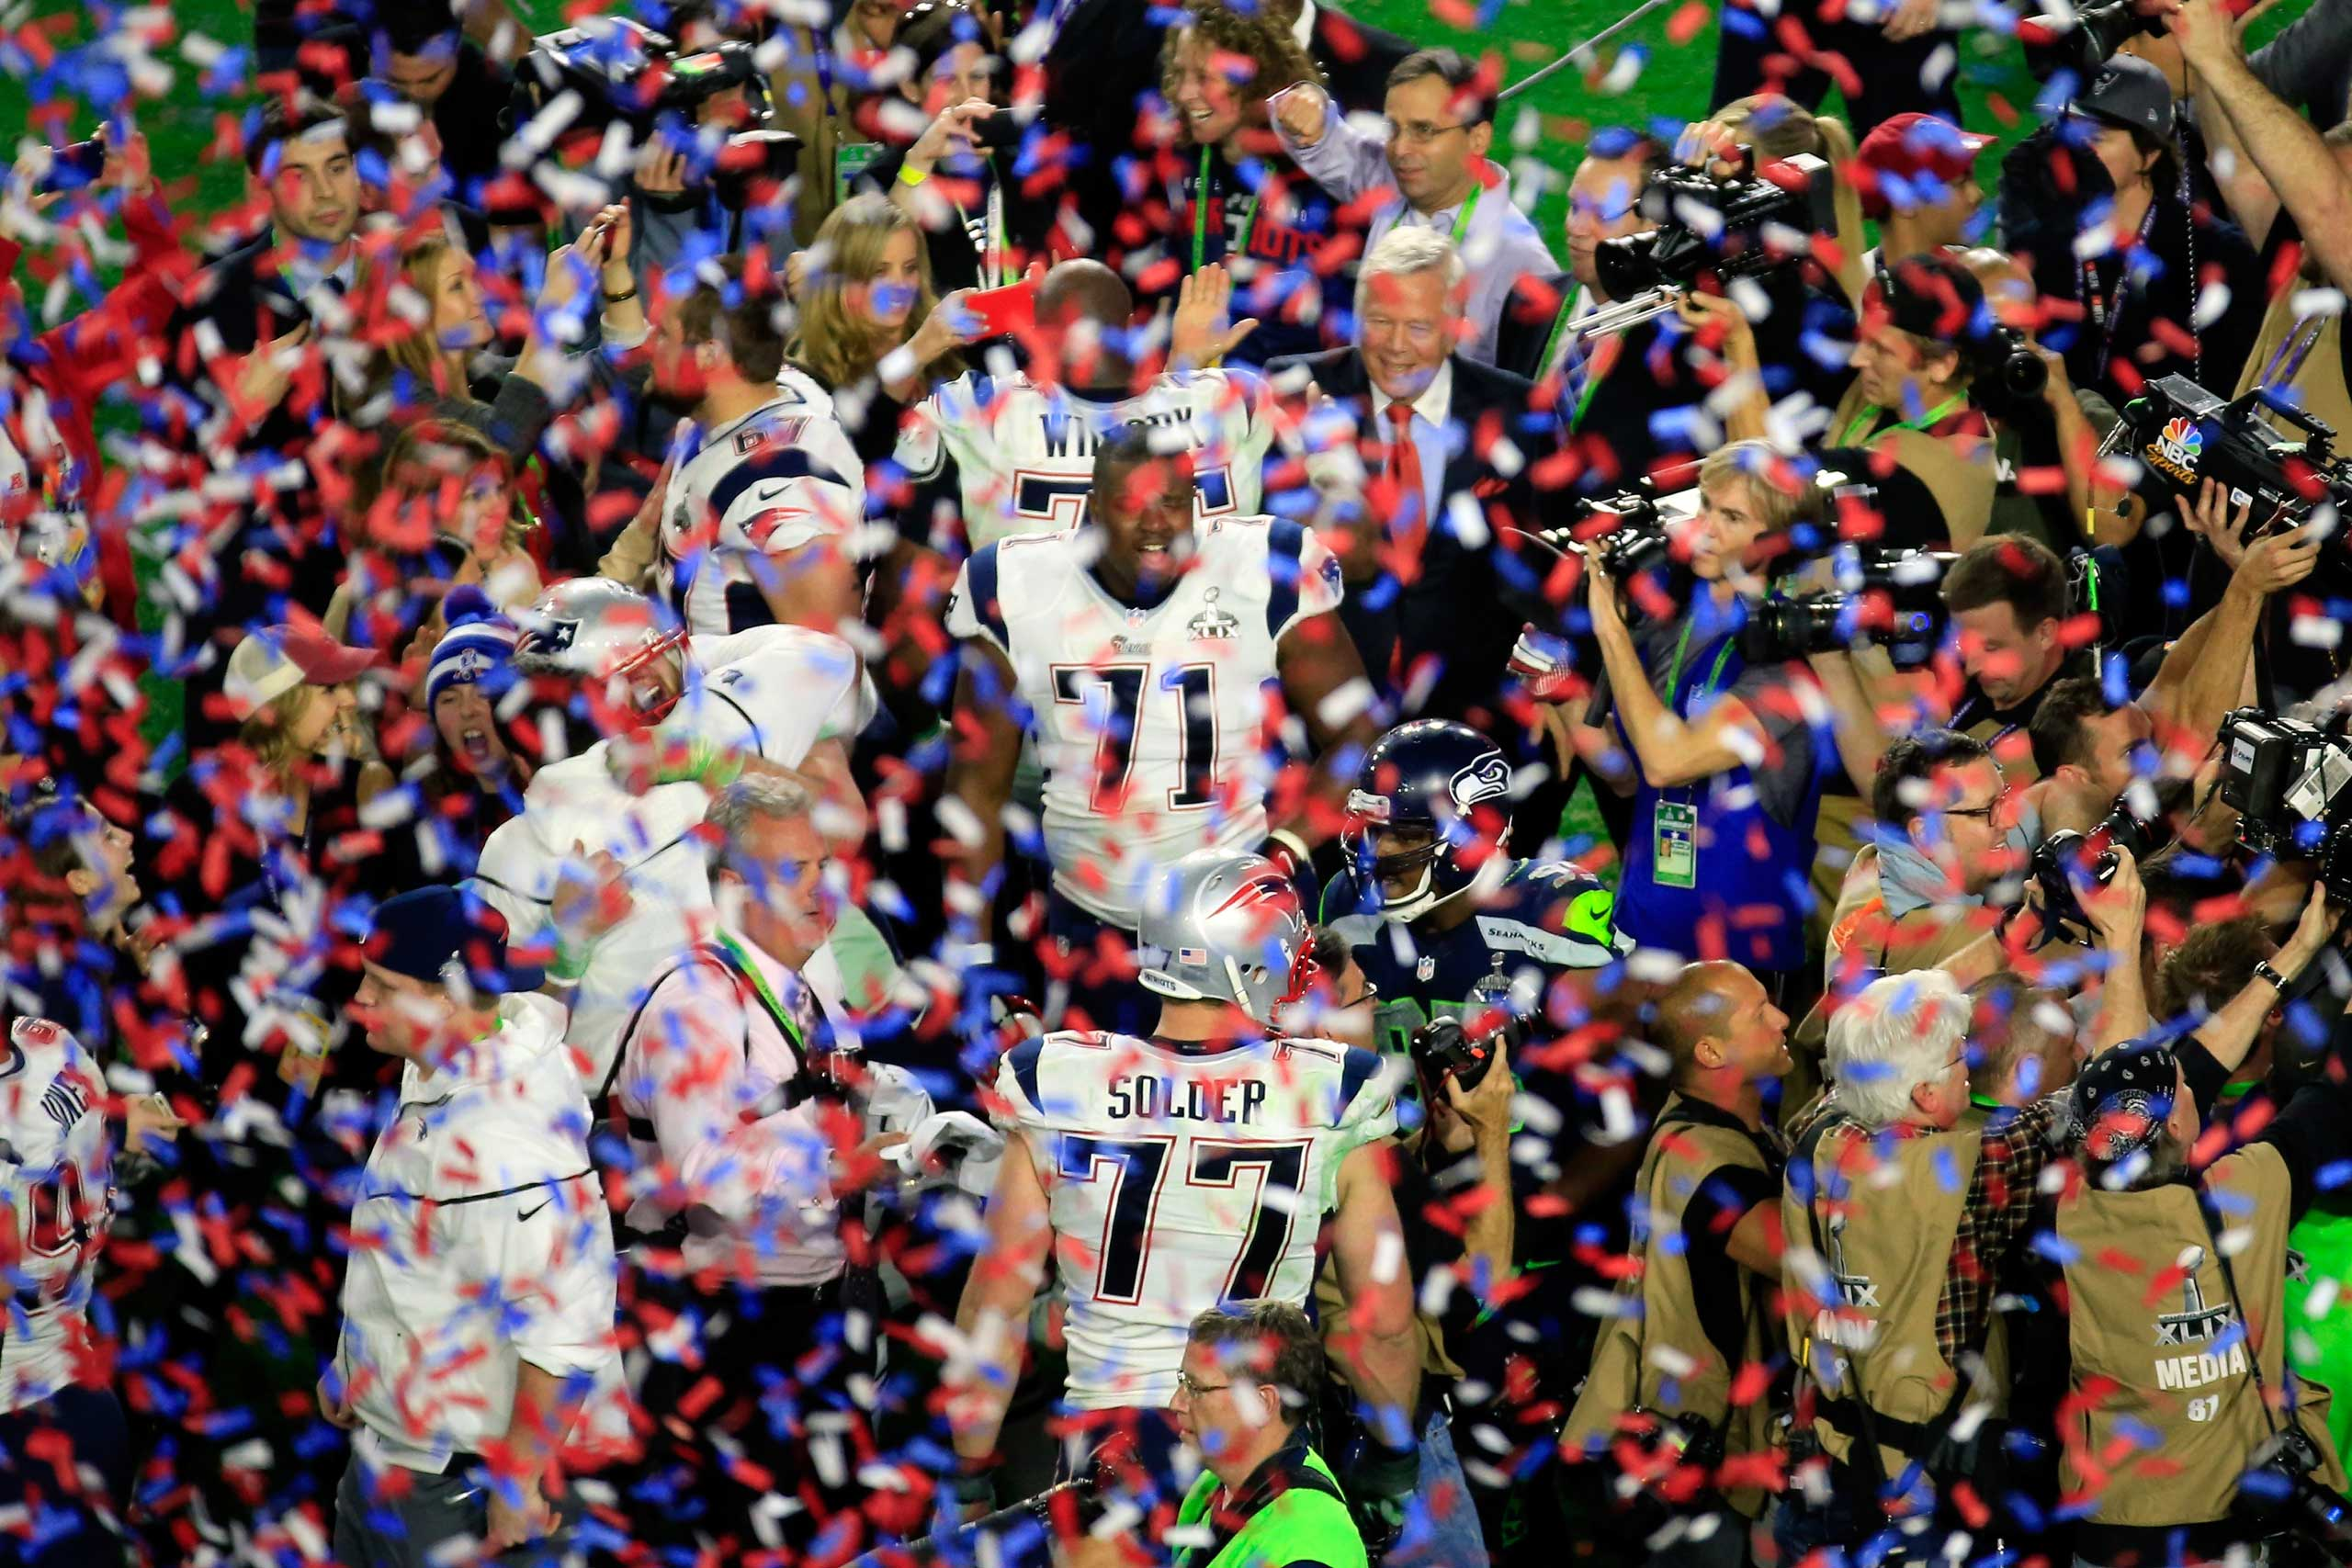 Cameron Fleming of the New England Patriots celebrates with teammates after defeating the Seattle Seahawks during Super Bowl XLIX on Feb. 1, 2015 in Glendale, Ariz.